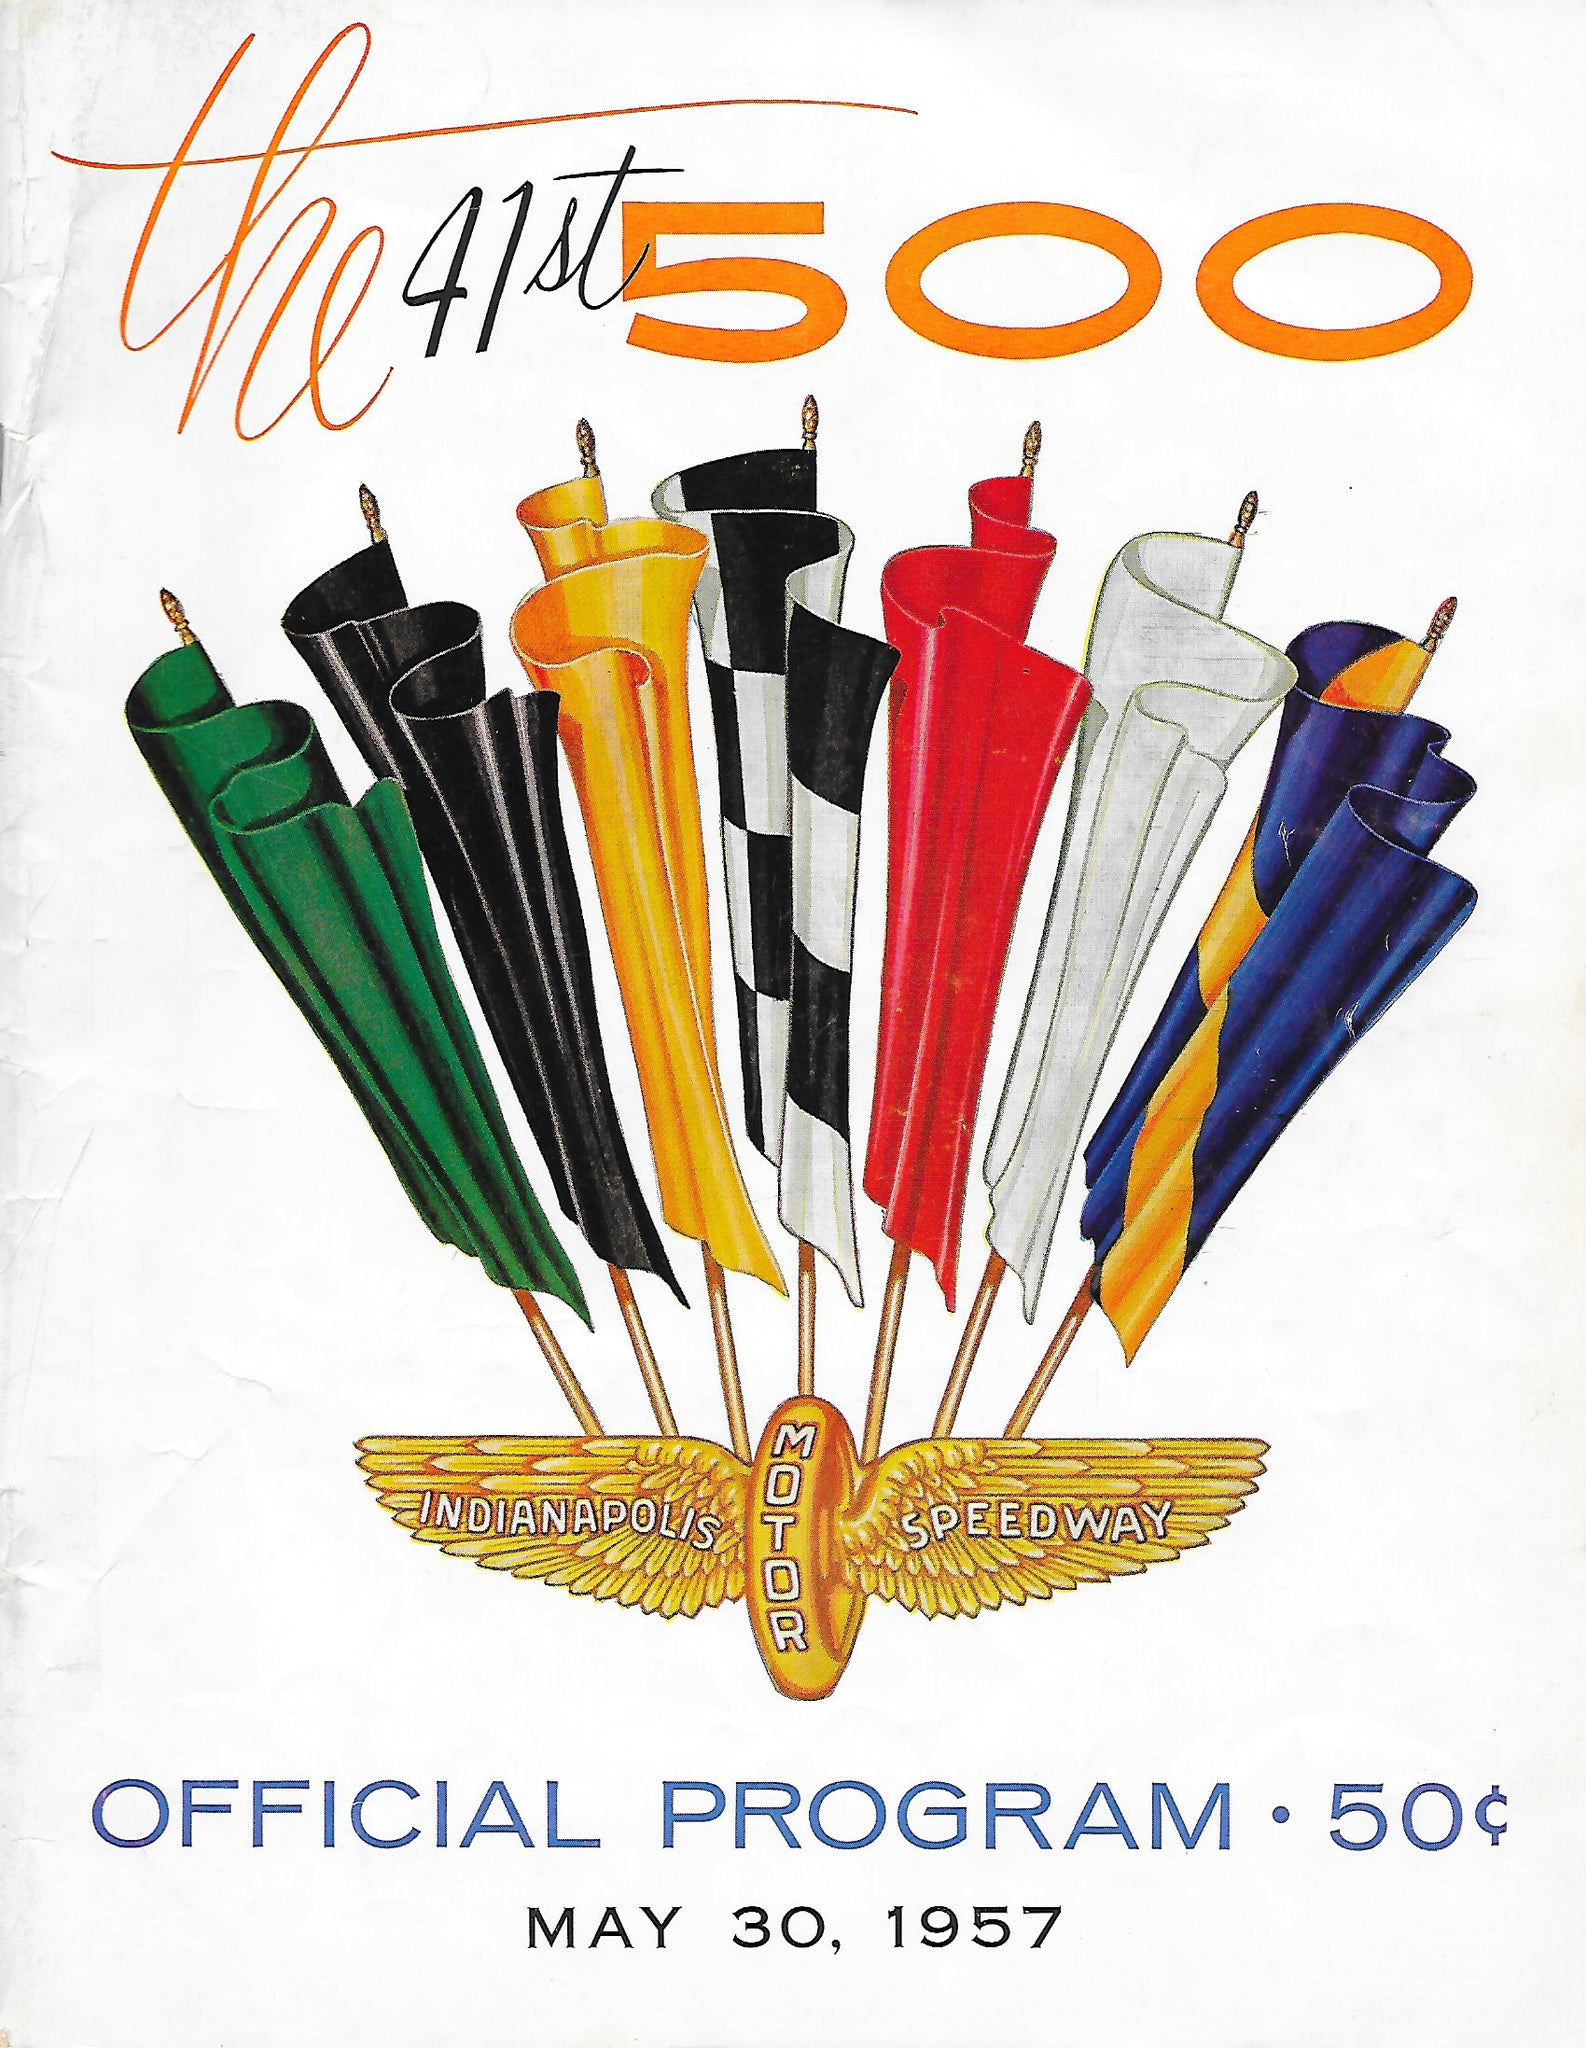 Vintage Racing Memorabilia - 1957 Indianapolis 500 Race Program